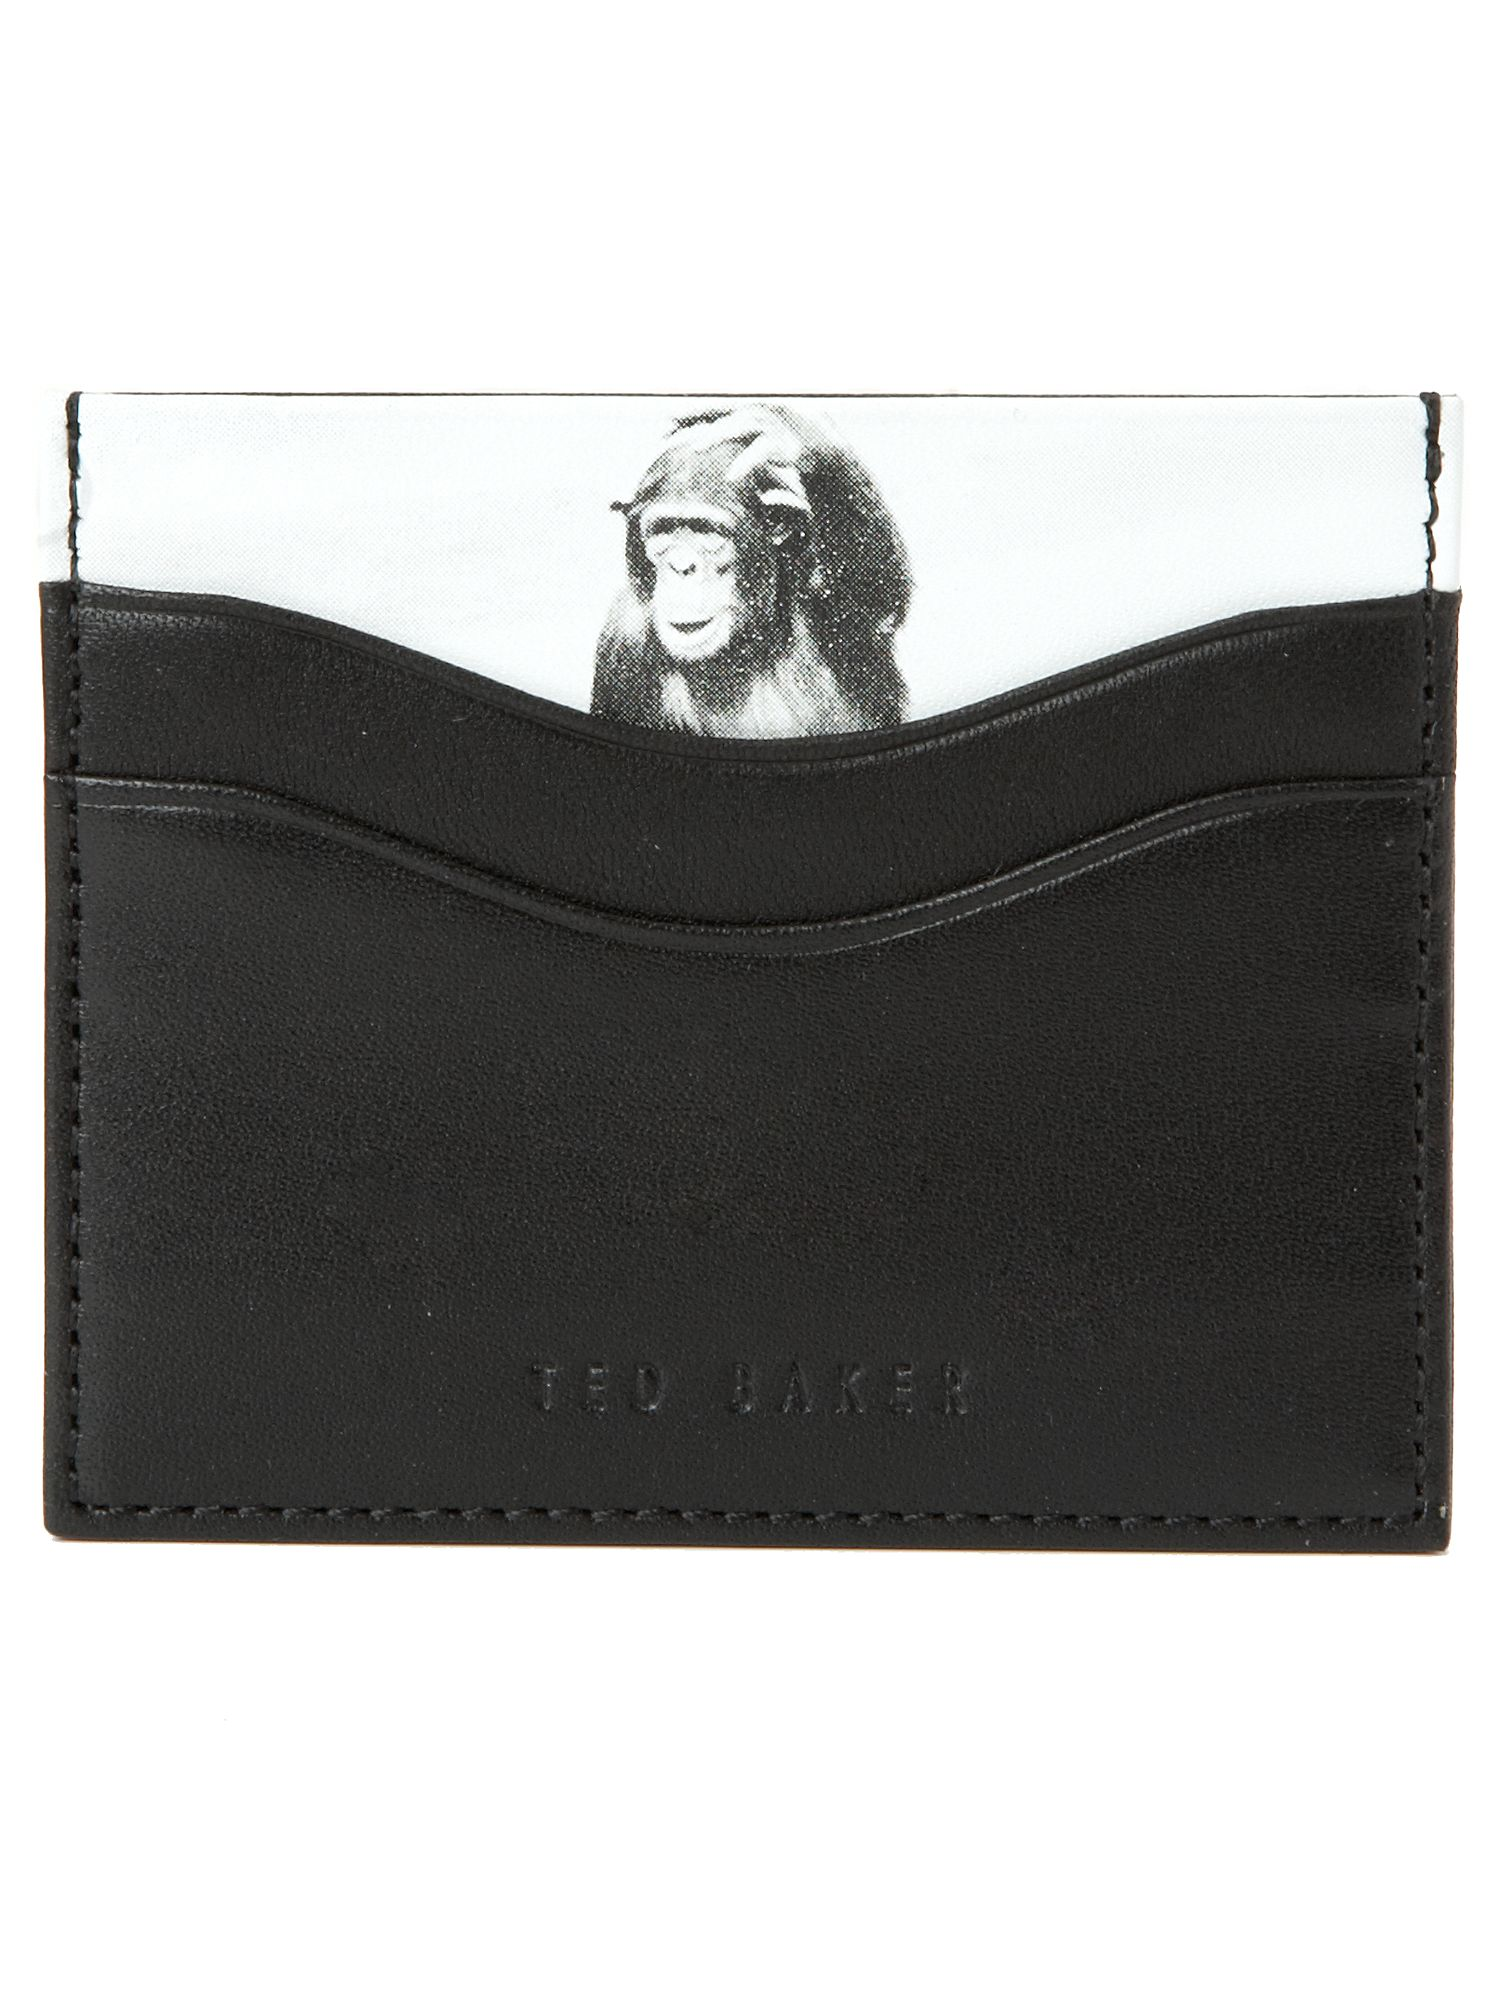 Ted Baker Credit card holder with monkey print insert Black product image